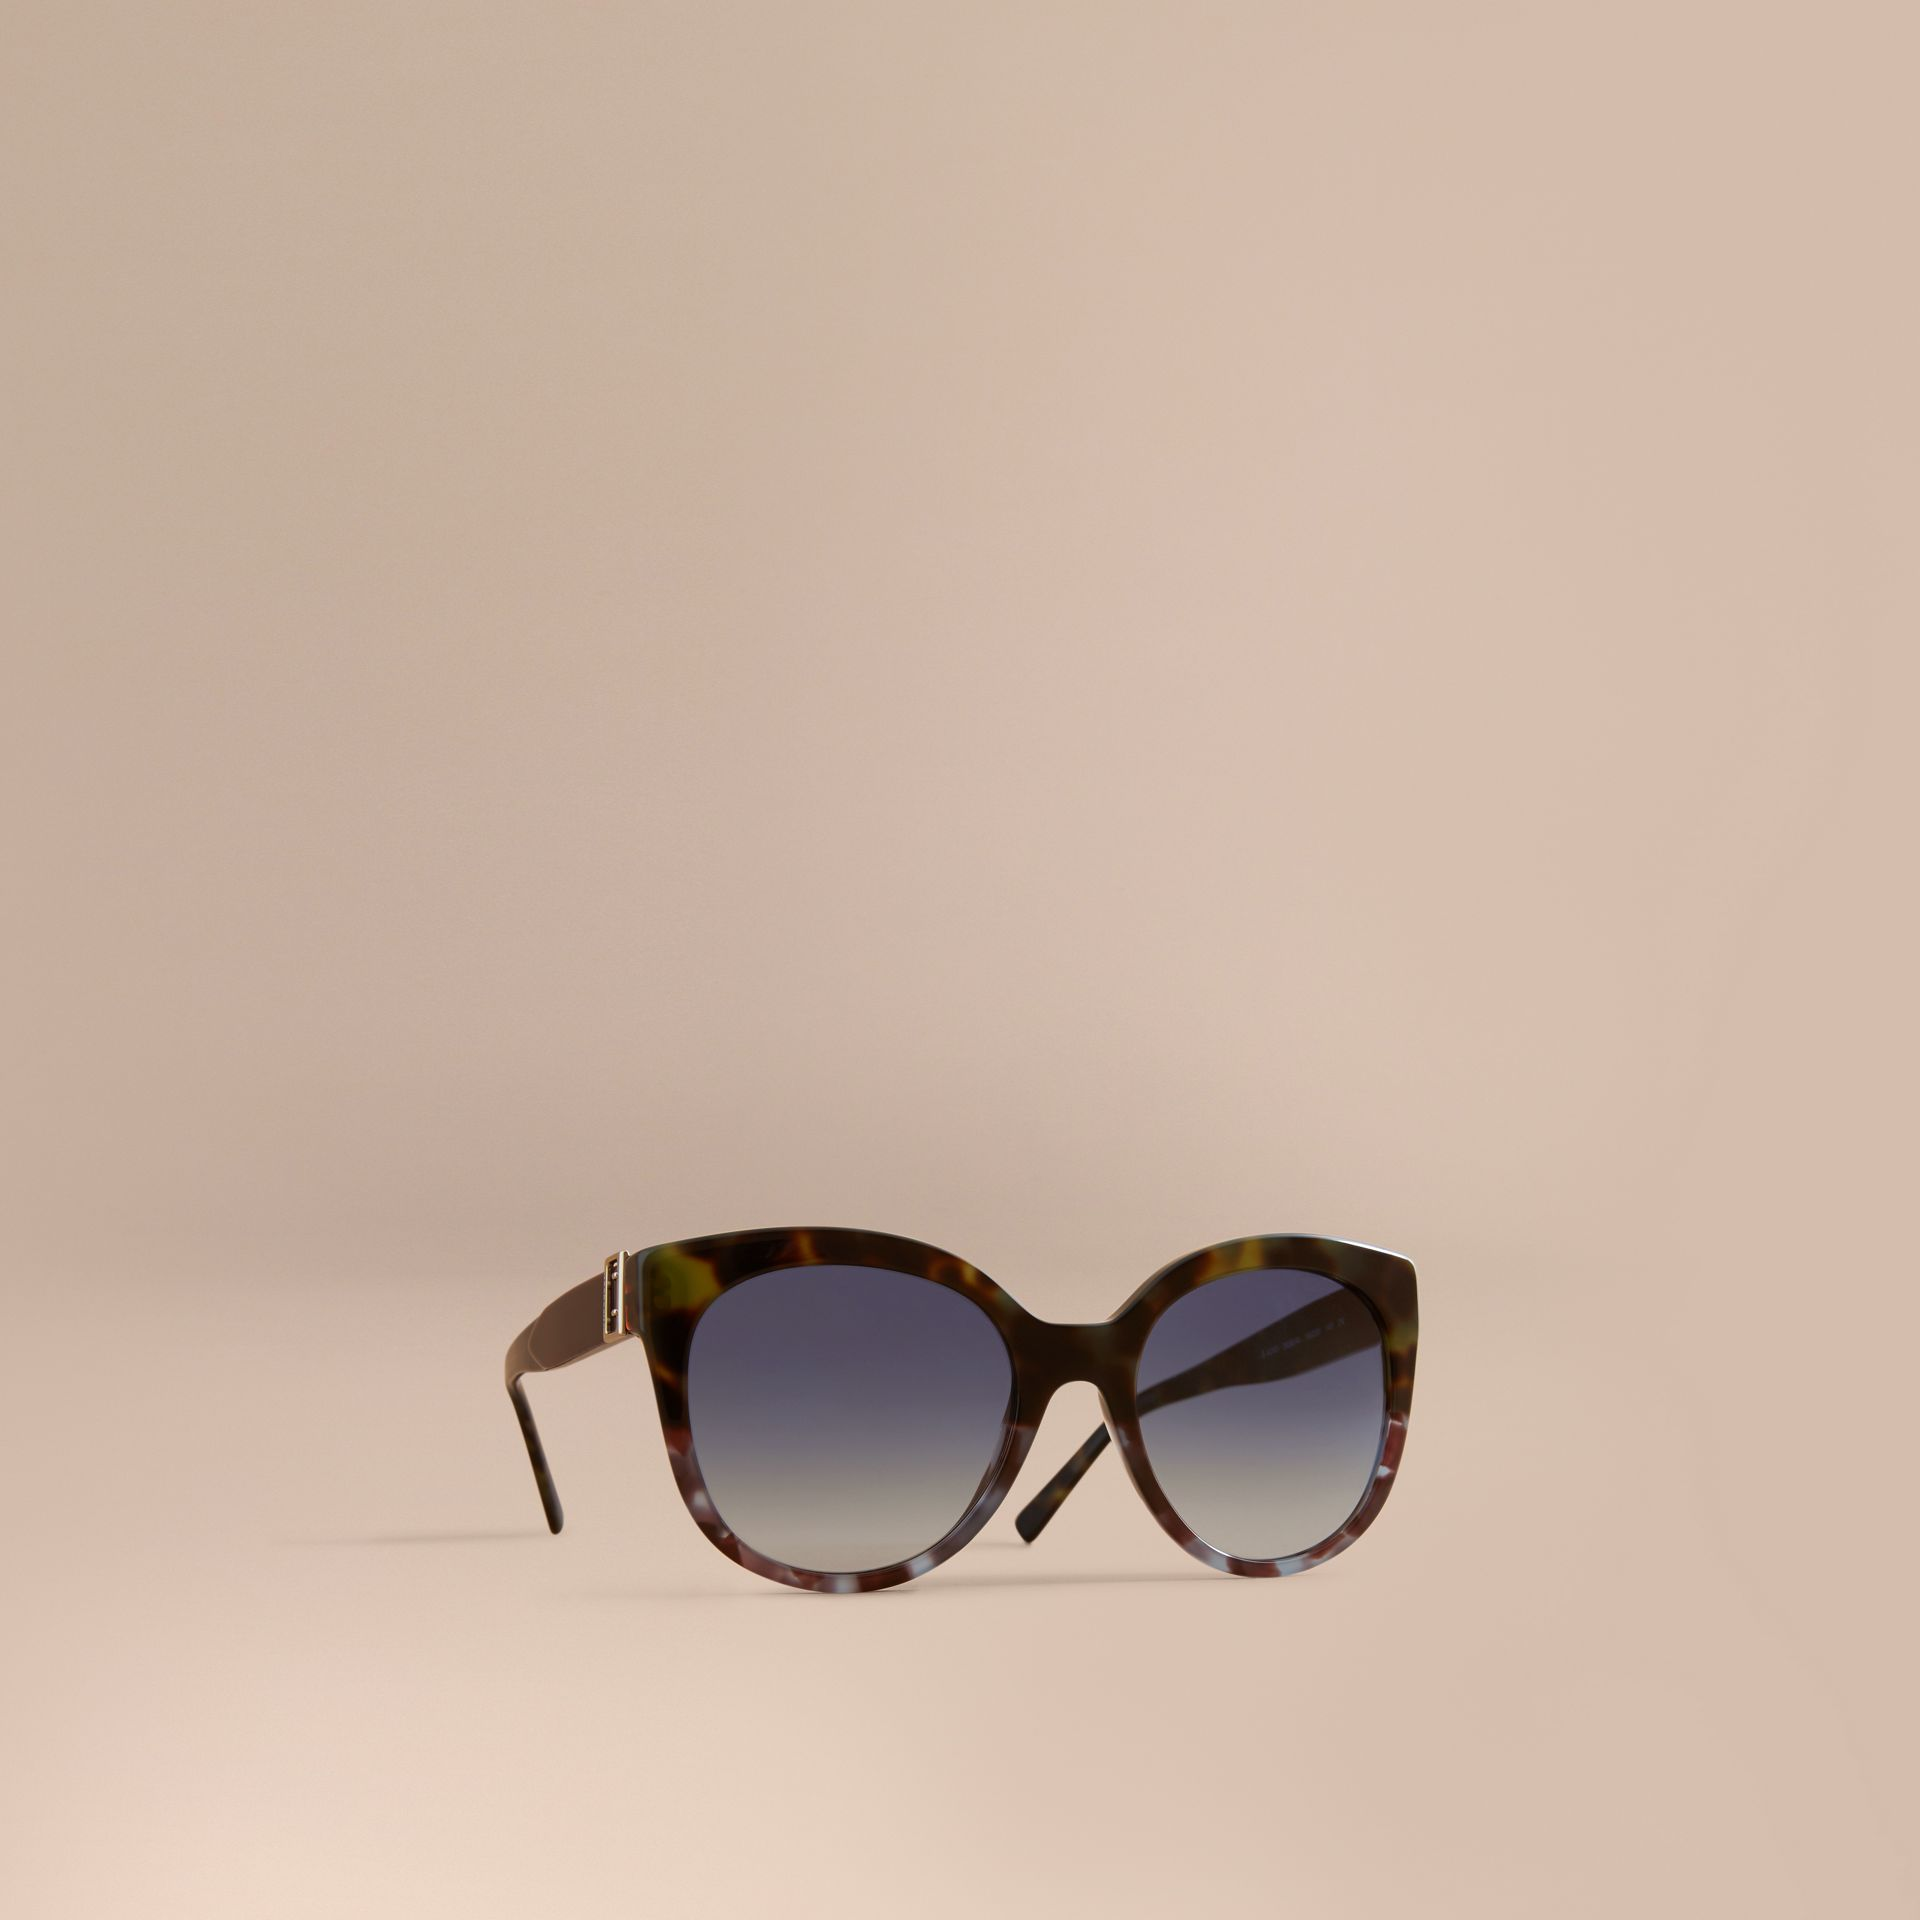 Buckle Detail Cat-eye Frame Sunglasses in Apple Green - Women | Burberry Singapore - gallery image 0